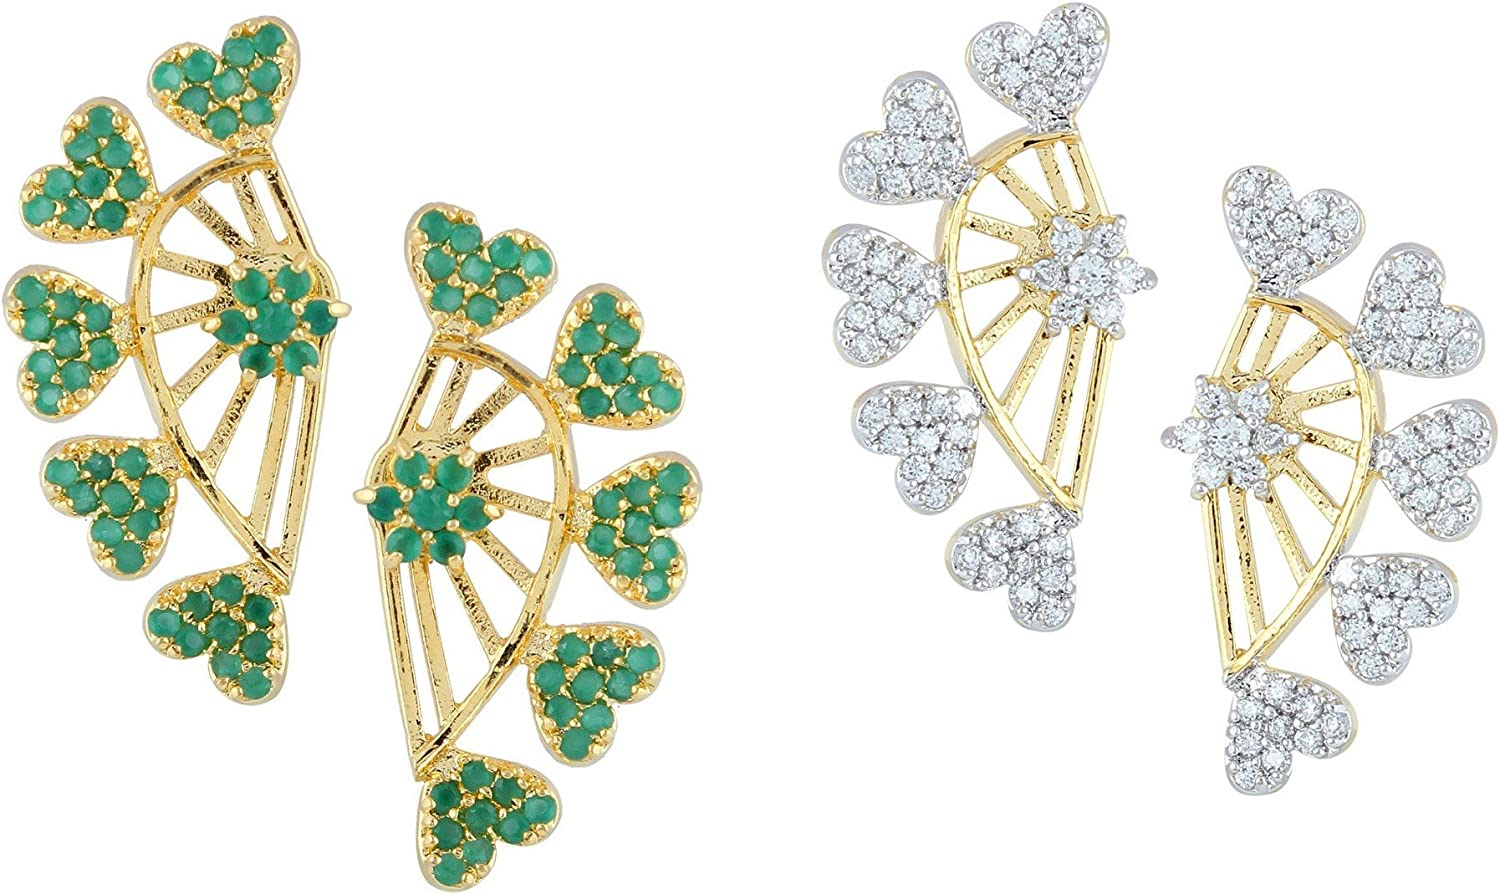 Combo of Indian Bollywood Ethnic Designer Ear Cuffs Earrings Jewelry for Women